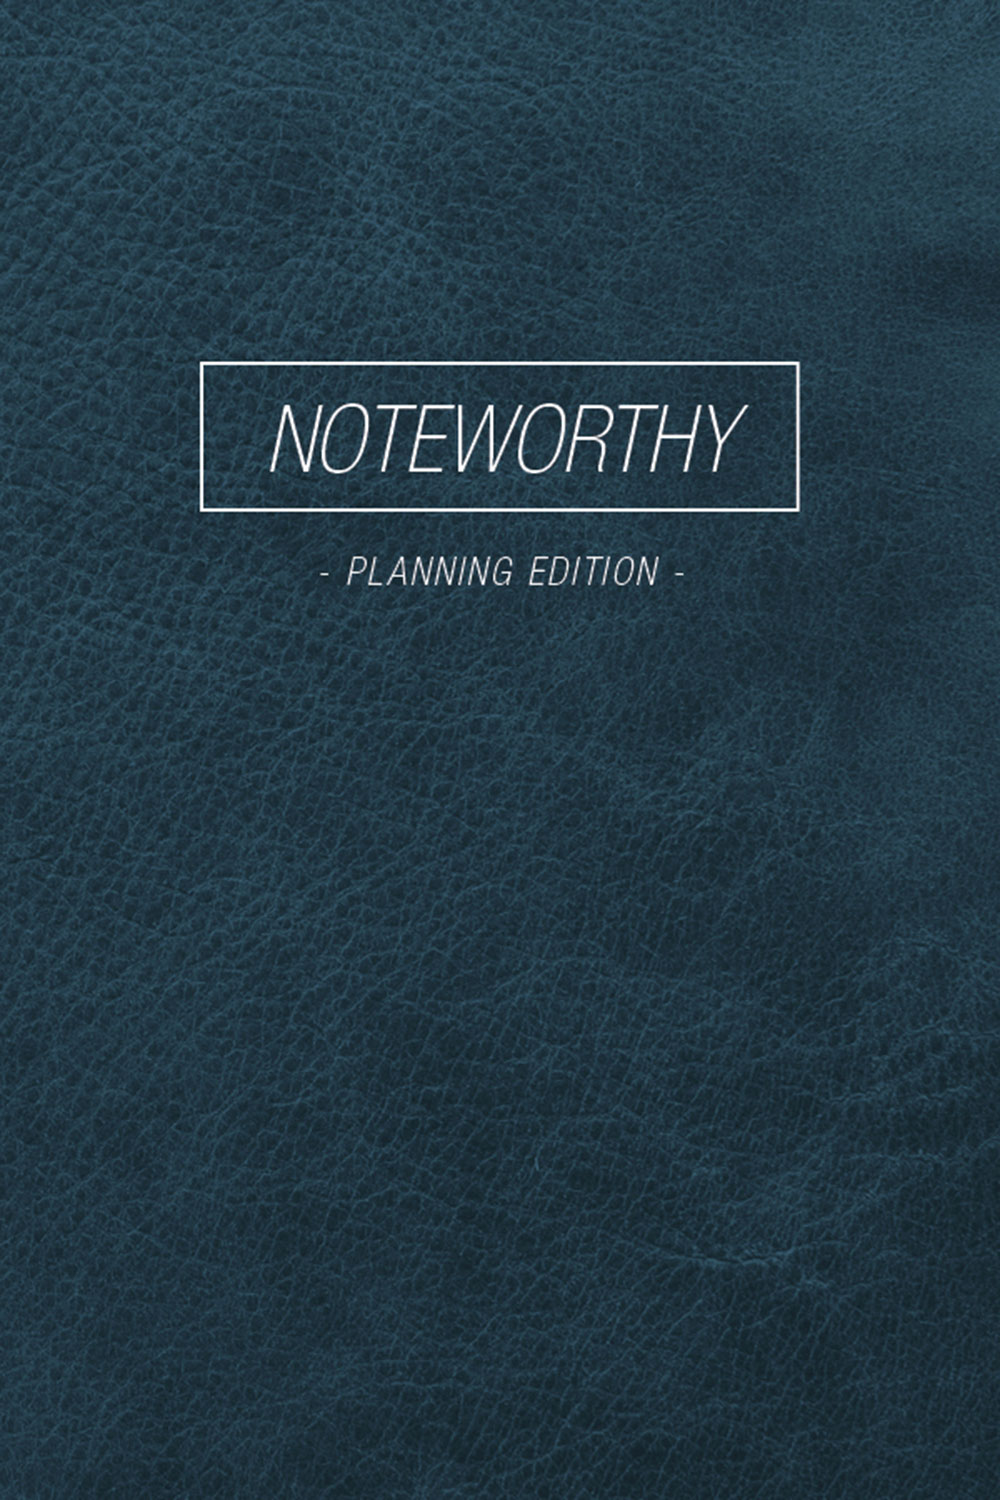 Noteworthy | Planning Edition